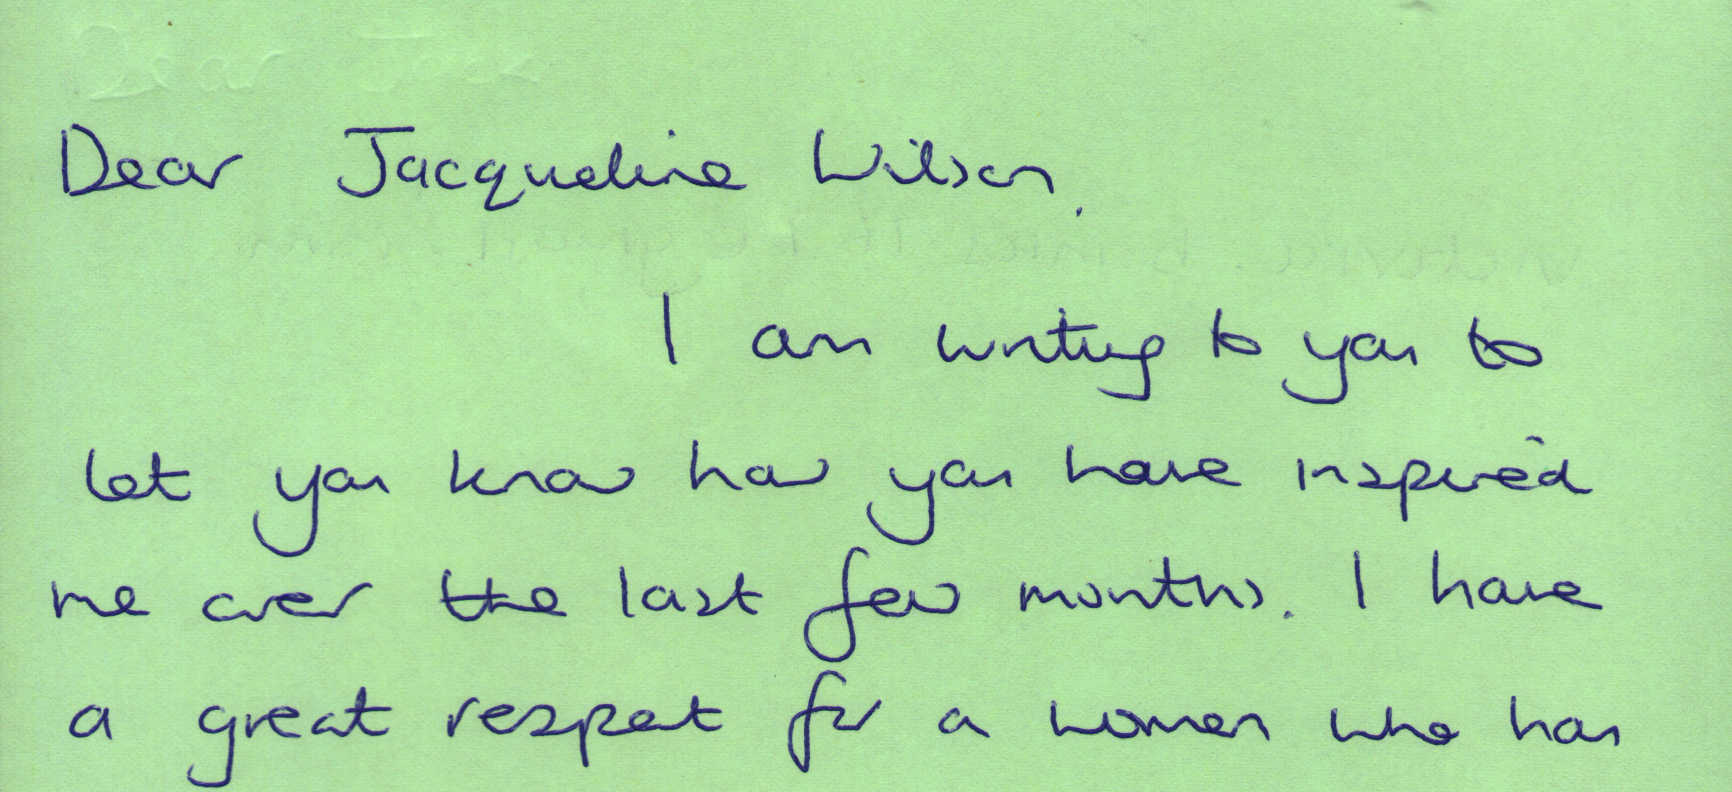 Letter to Jacqueline Wilson from Victoria Banks